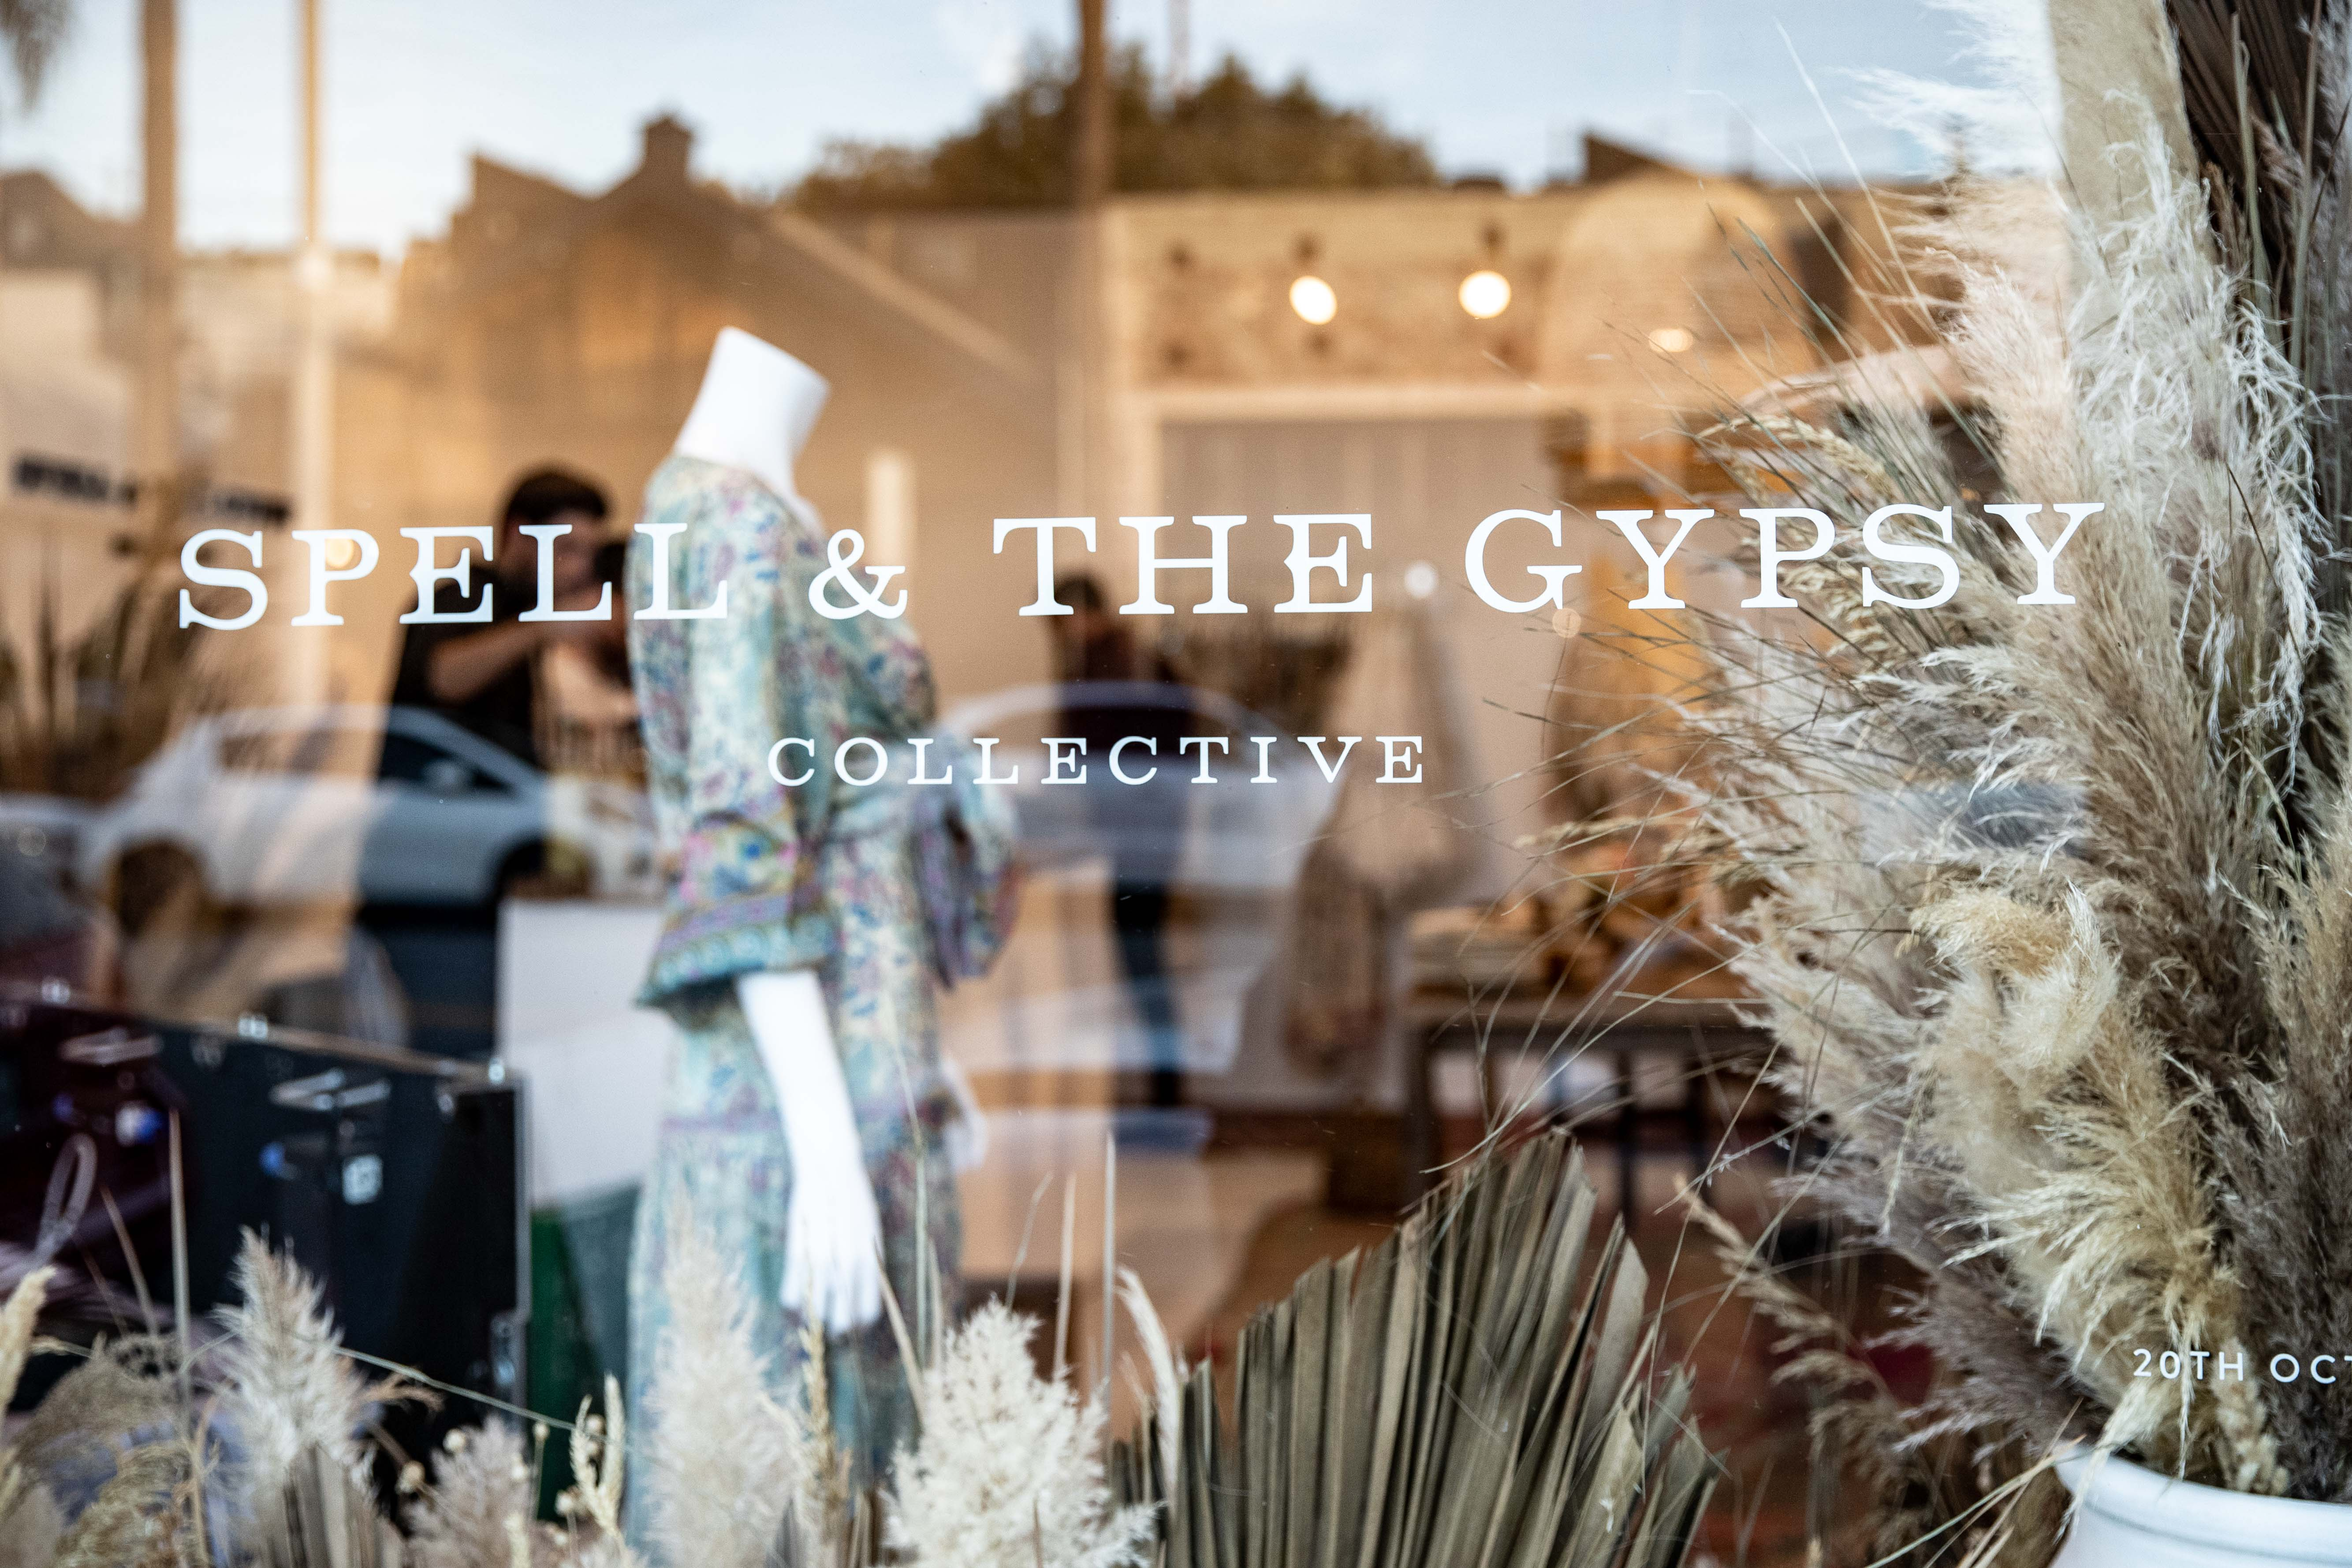 Spell & The Gypsy Collective pop-up shop on Abbot Kinney Boulevard in Venice, Calif.